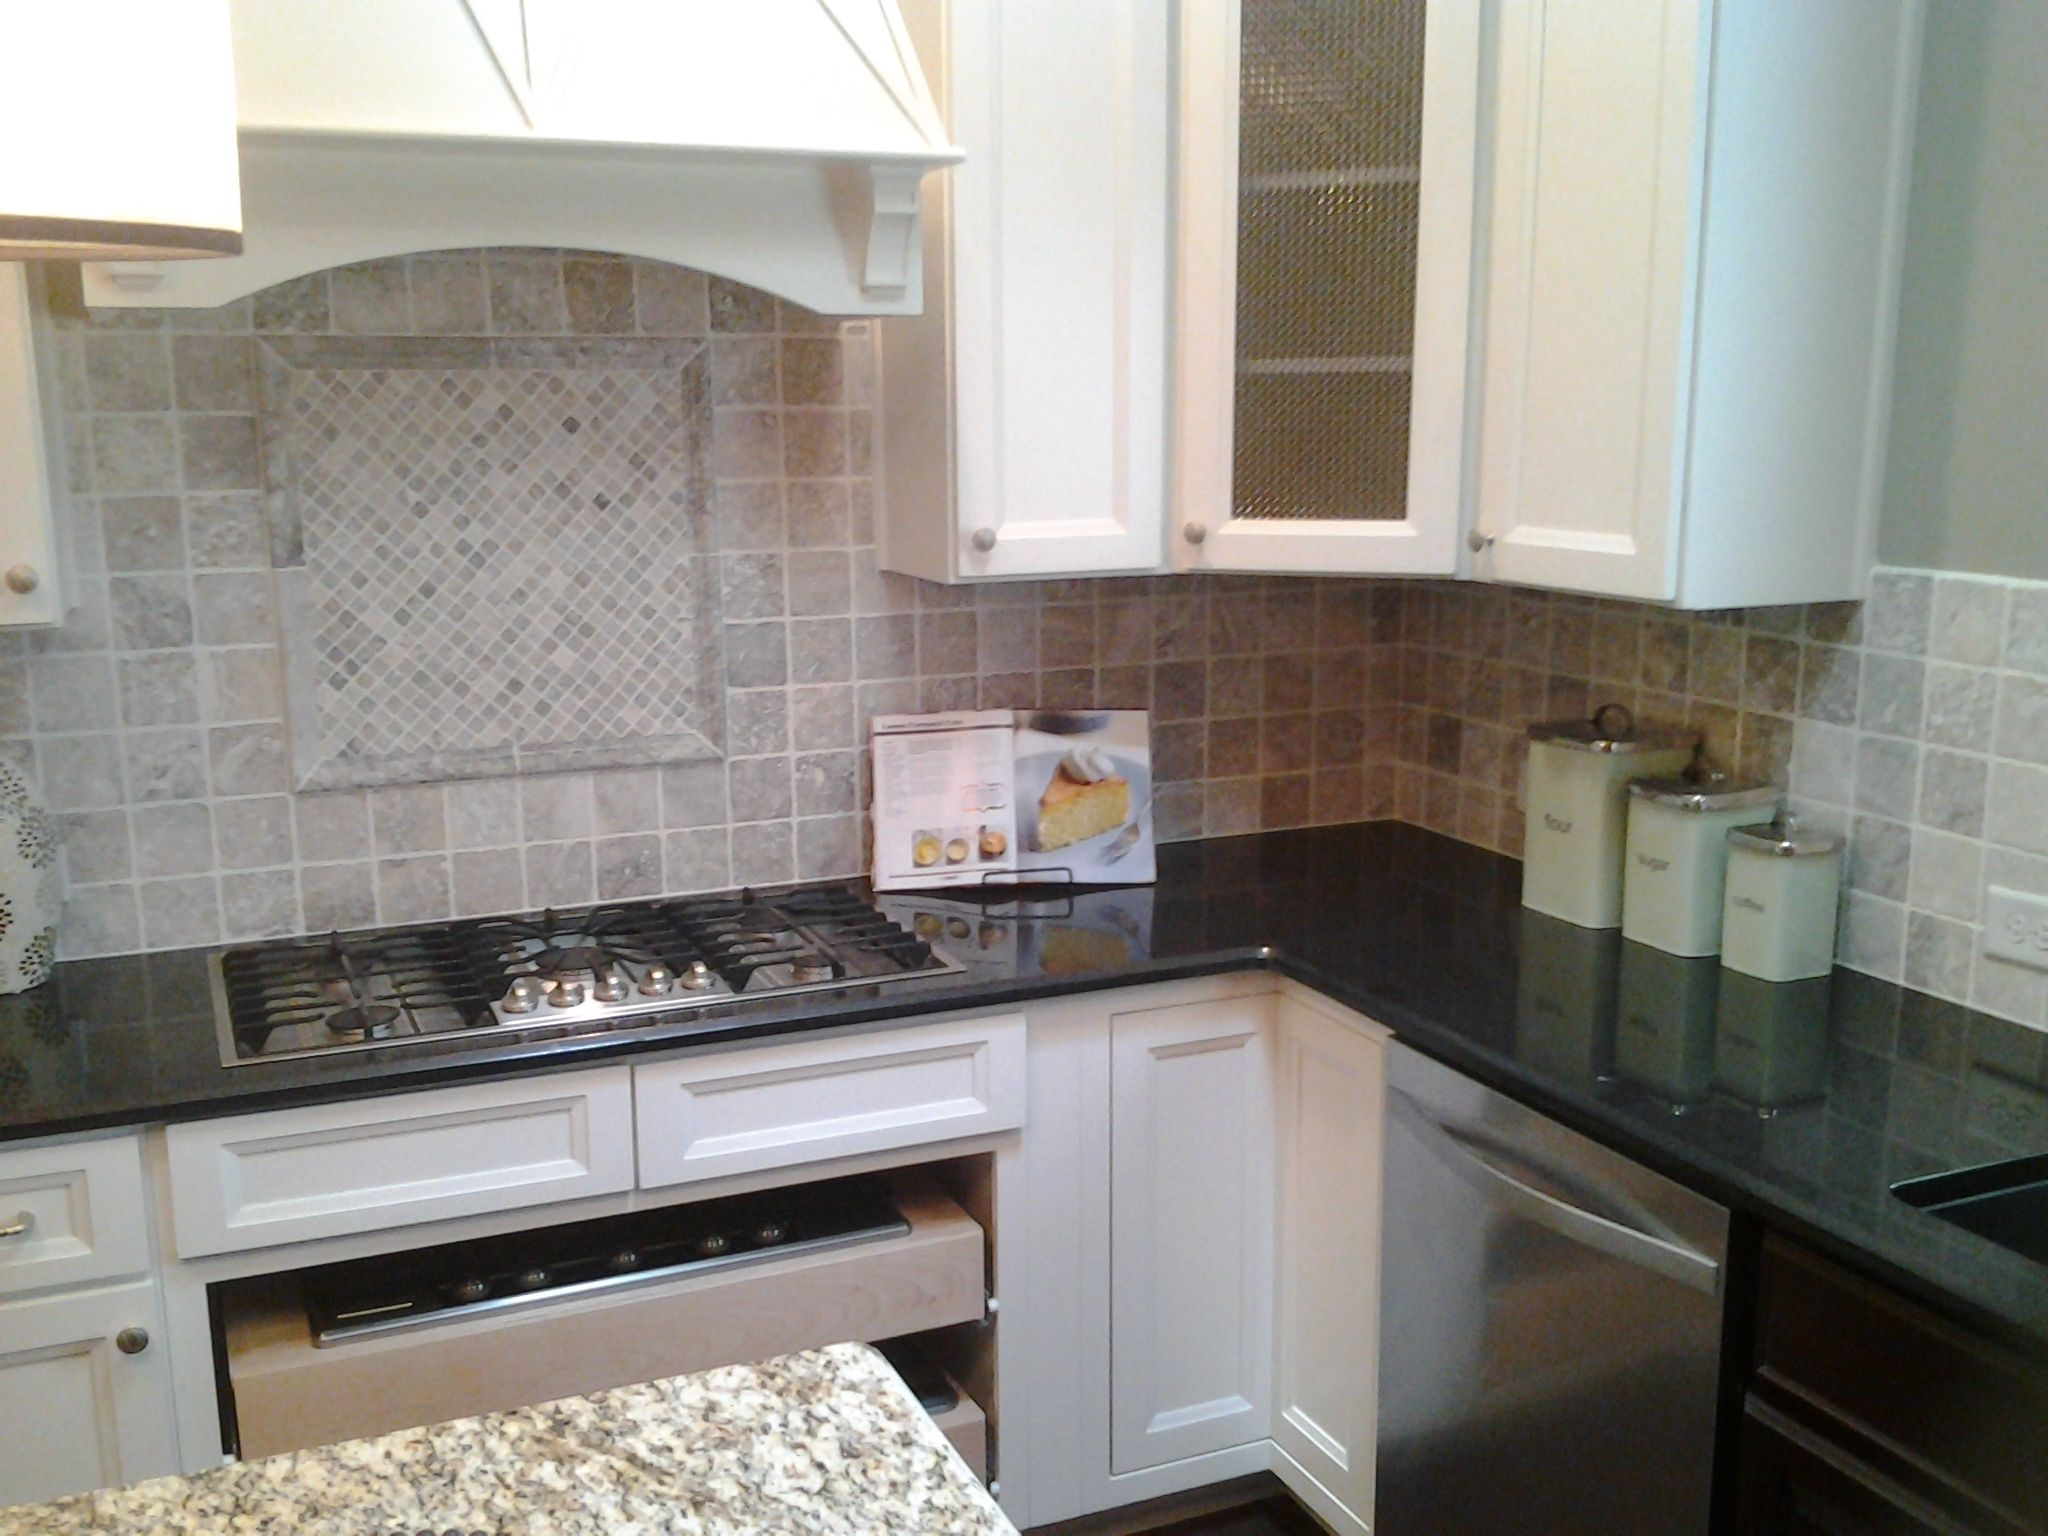 Merveilleux Best Grout Sealer For Kitchen Backsplash